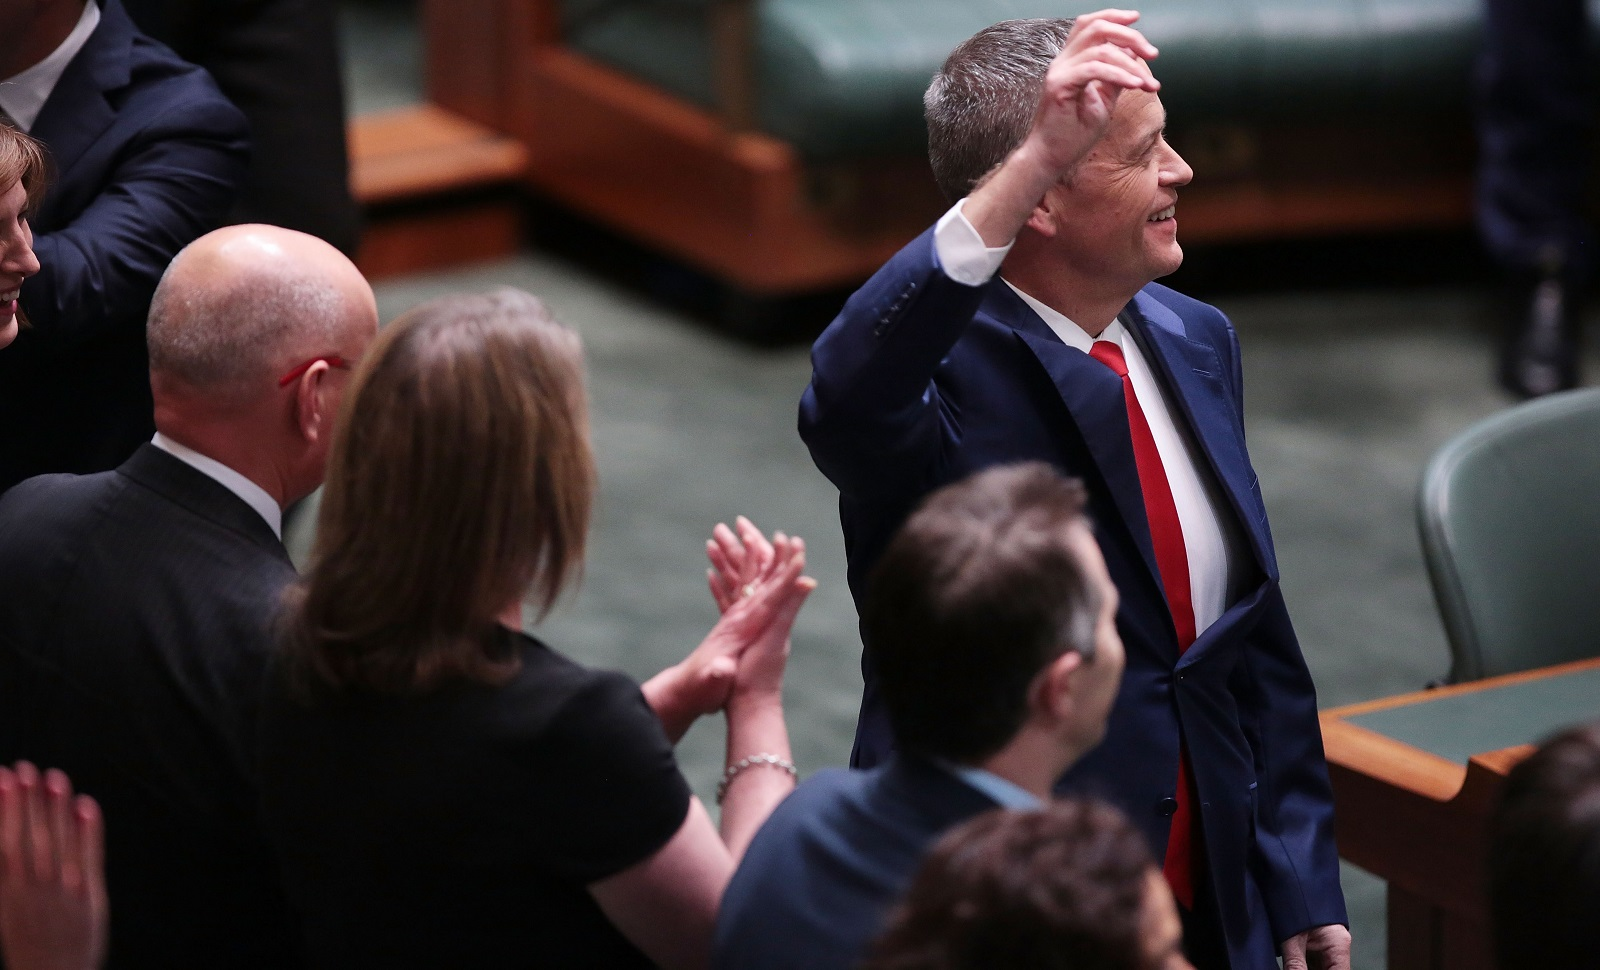 ALP leader Bill Shorten (Photo: Stefan Postles/Getty Images)